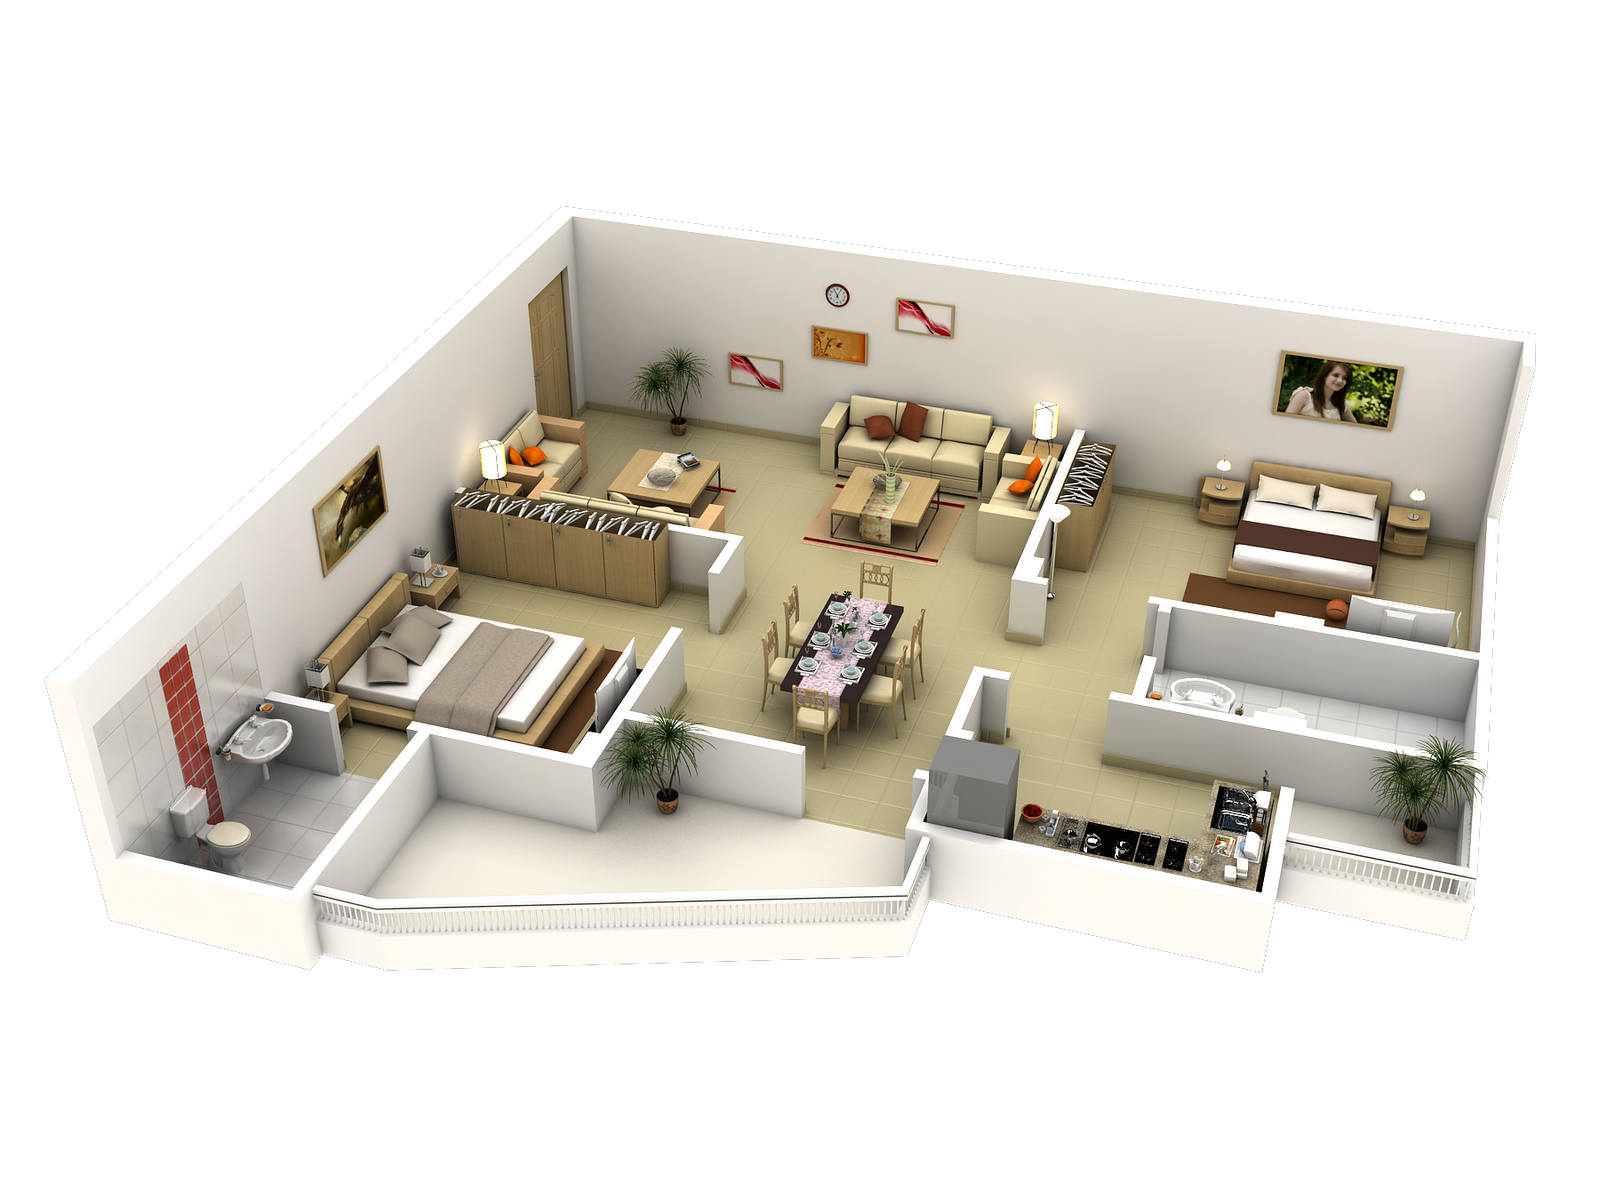 Interior design for double bedroom flat drawings of self contained flat  google search  projetos